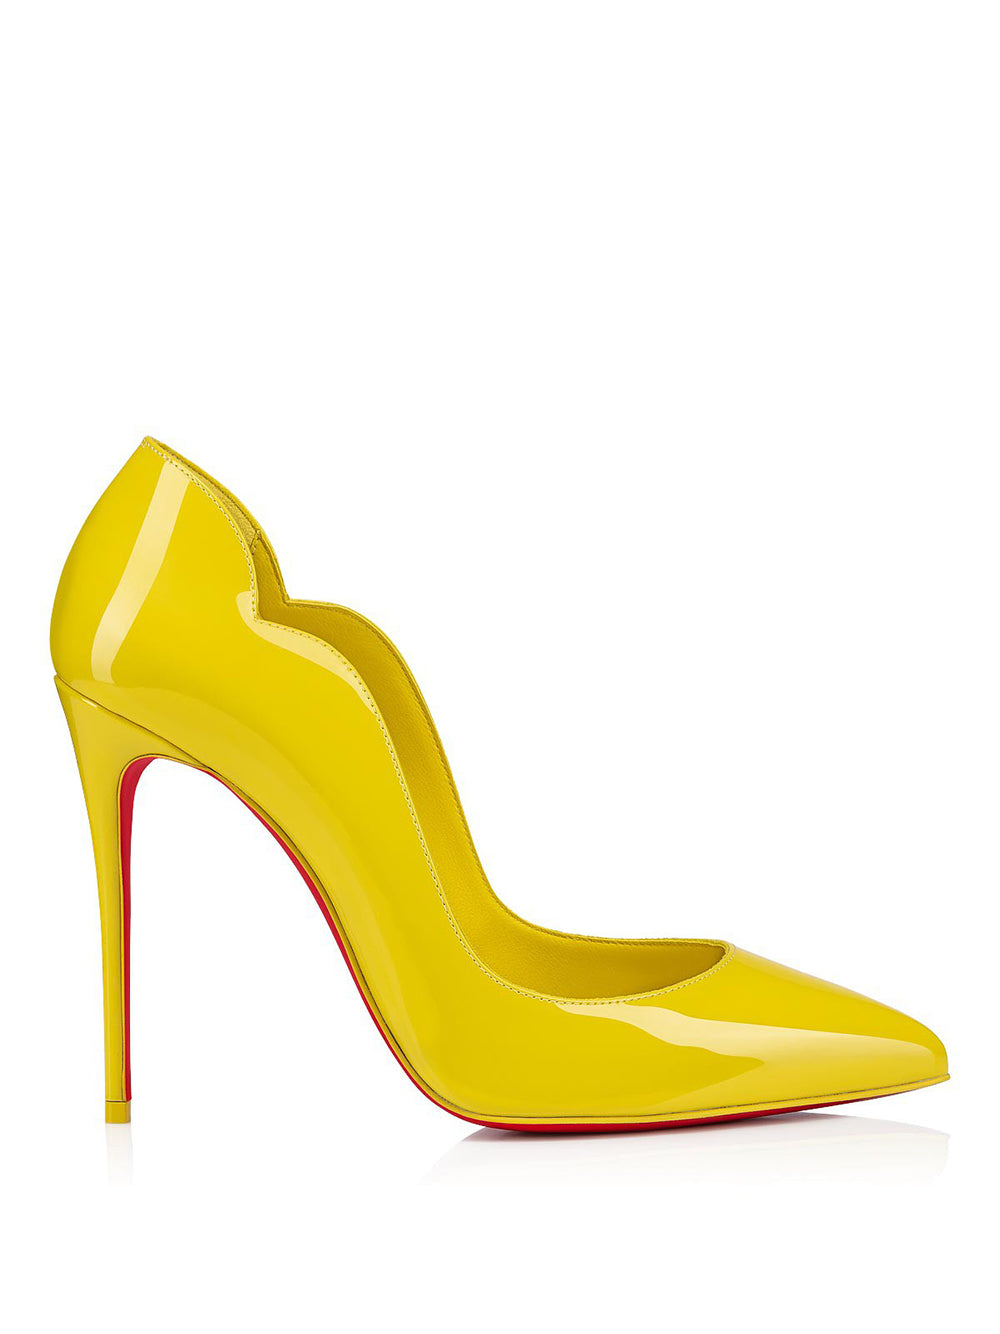 Hot Chick 100 Yellow Patent Leather